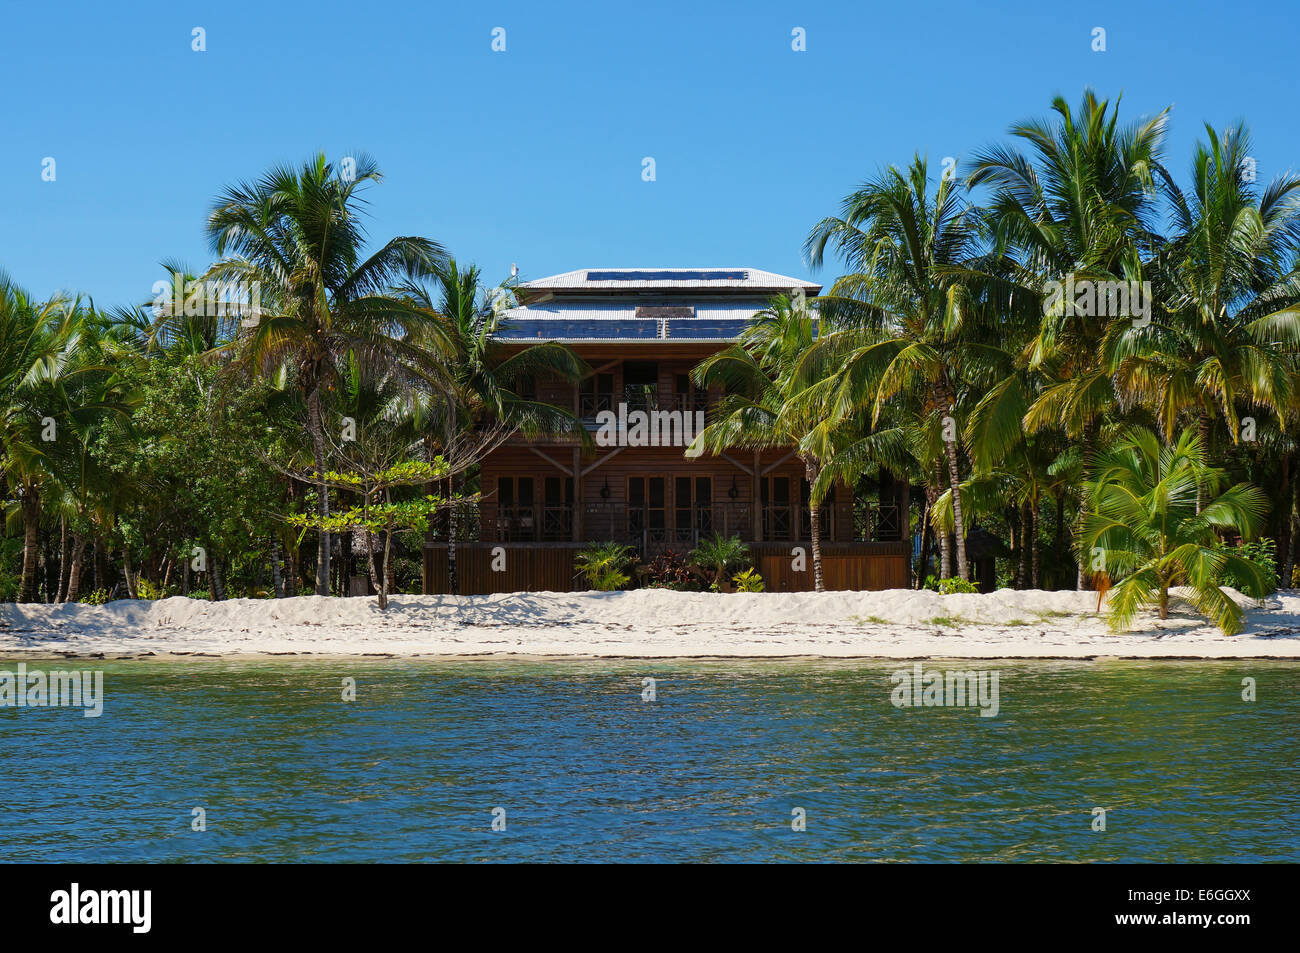 off-grid beach house with solar panels on the roof and tropical vegetation on an island of the Caribbean sea, Panama - Stock Image